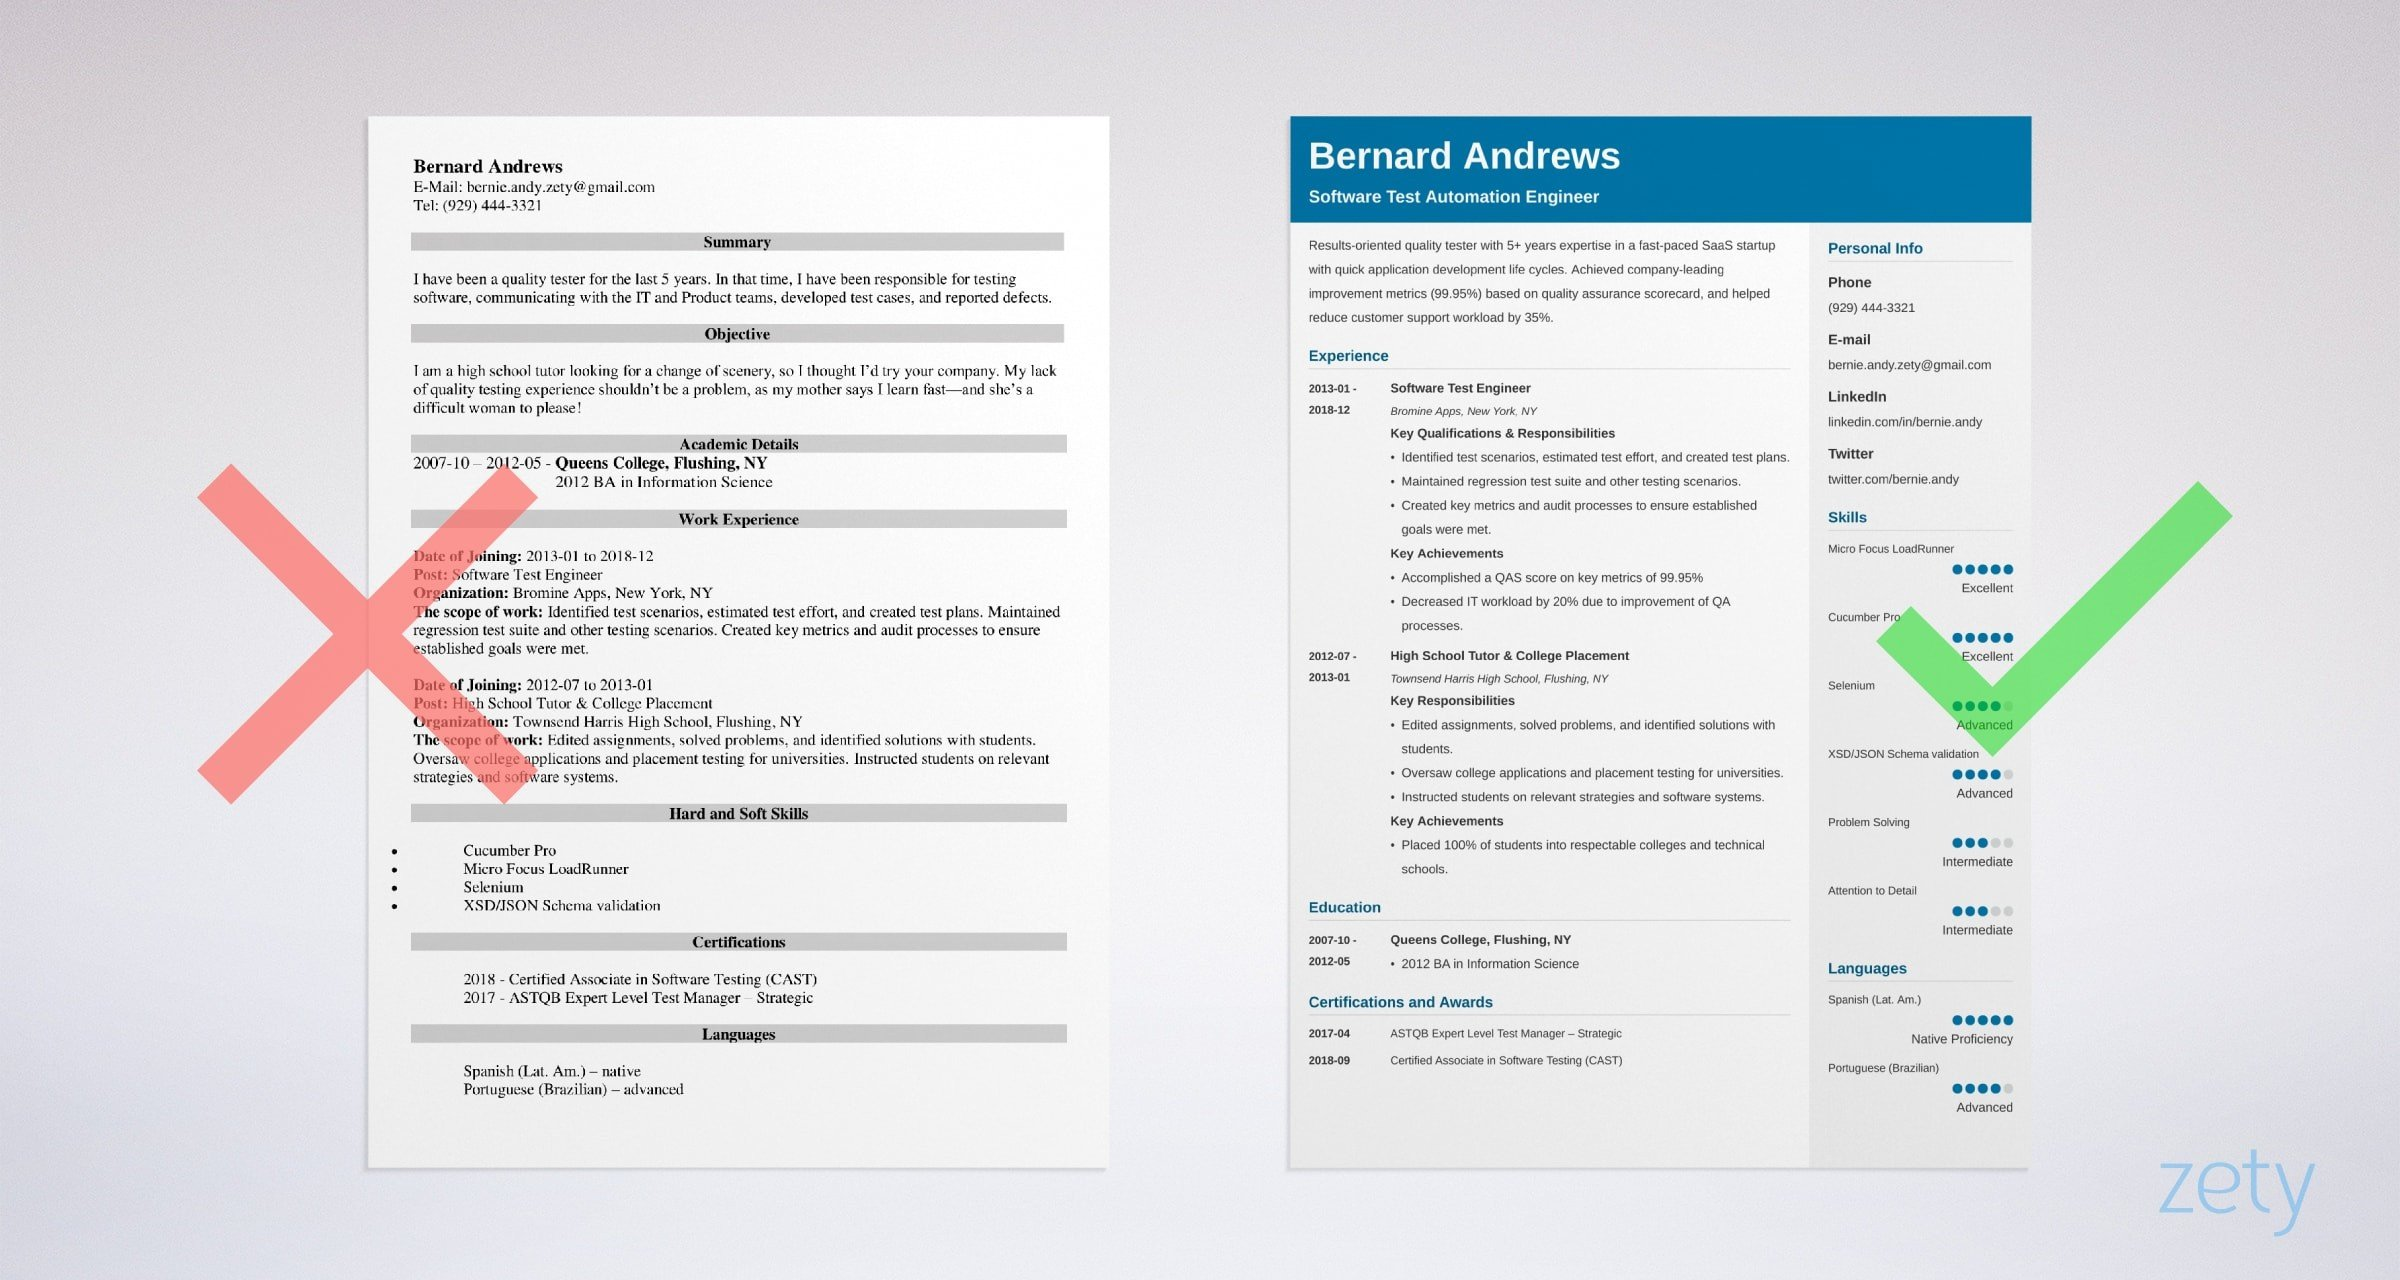 quality assurance qa resume samples guide examples software testing for years experience Resume Software Testing Resume Samples For 5 Years Experience